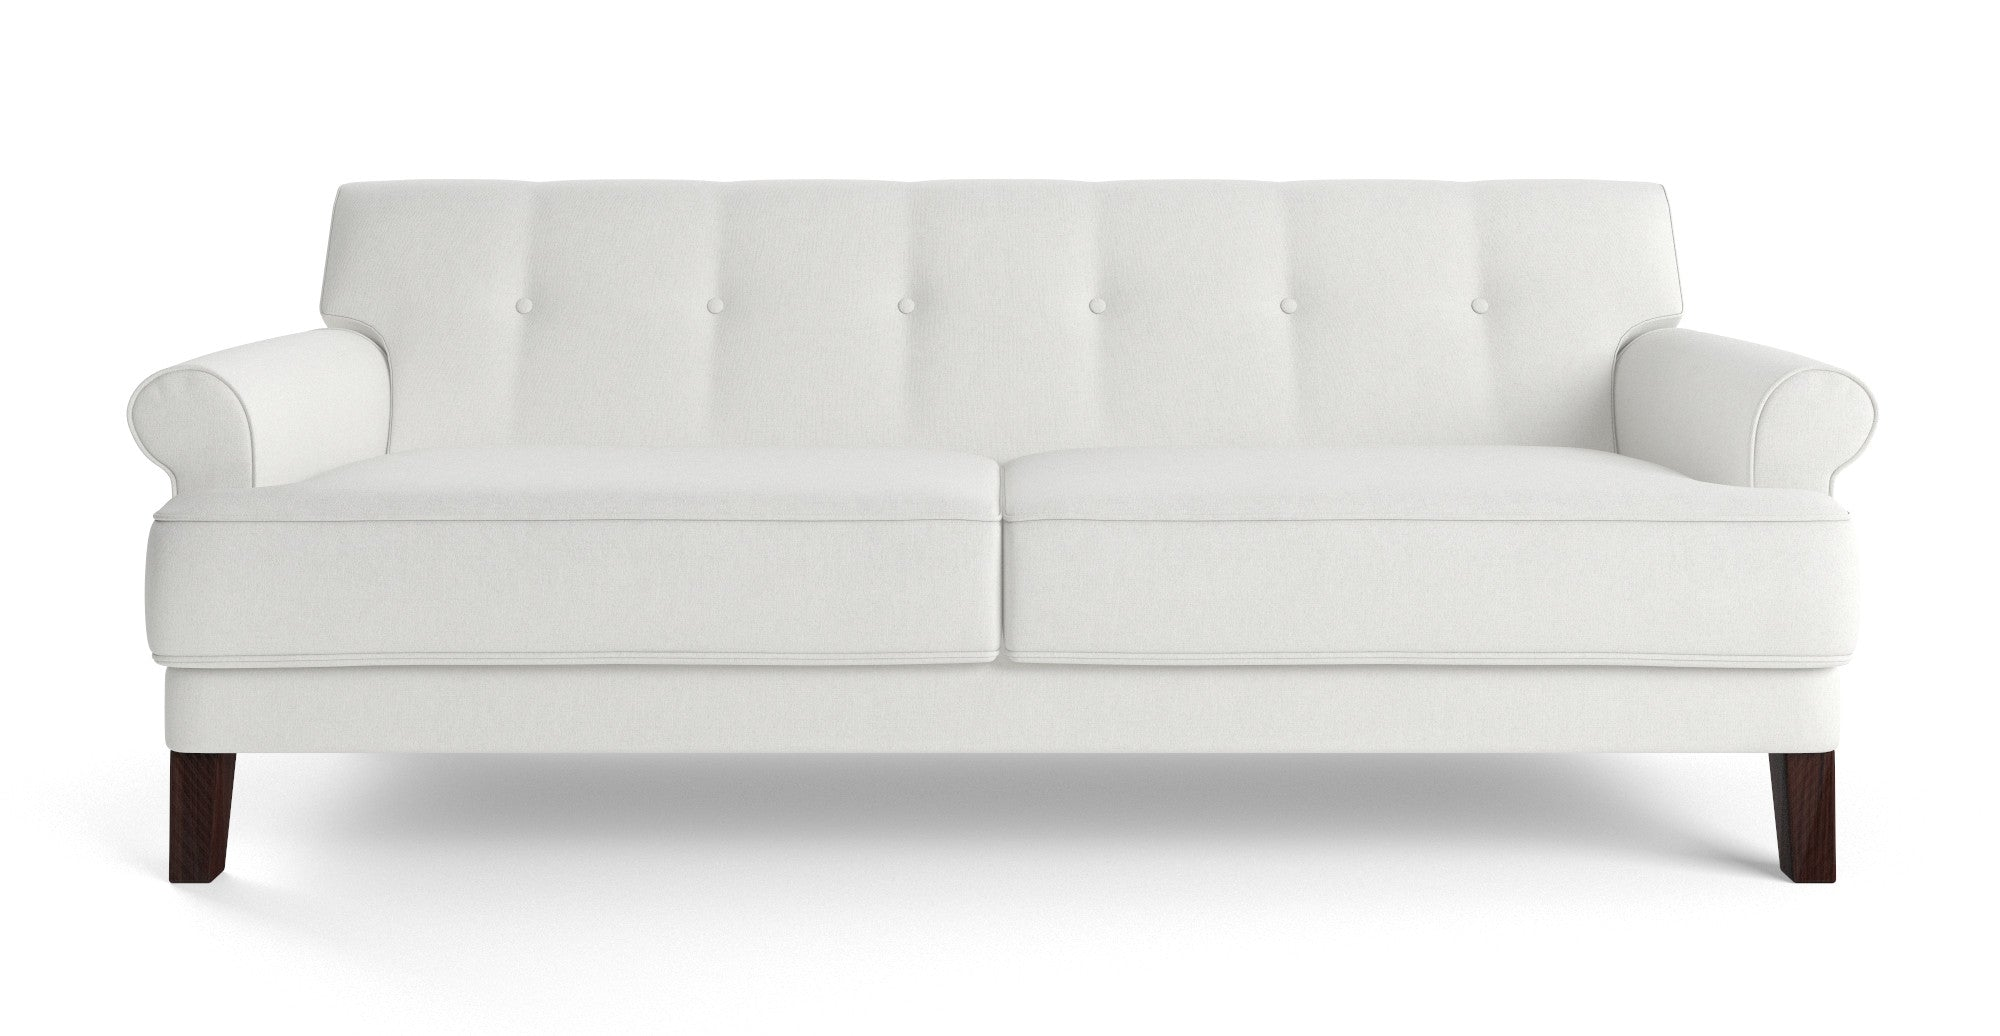 Designer Sofa Beds Melbourne Hereo Sofa